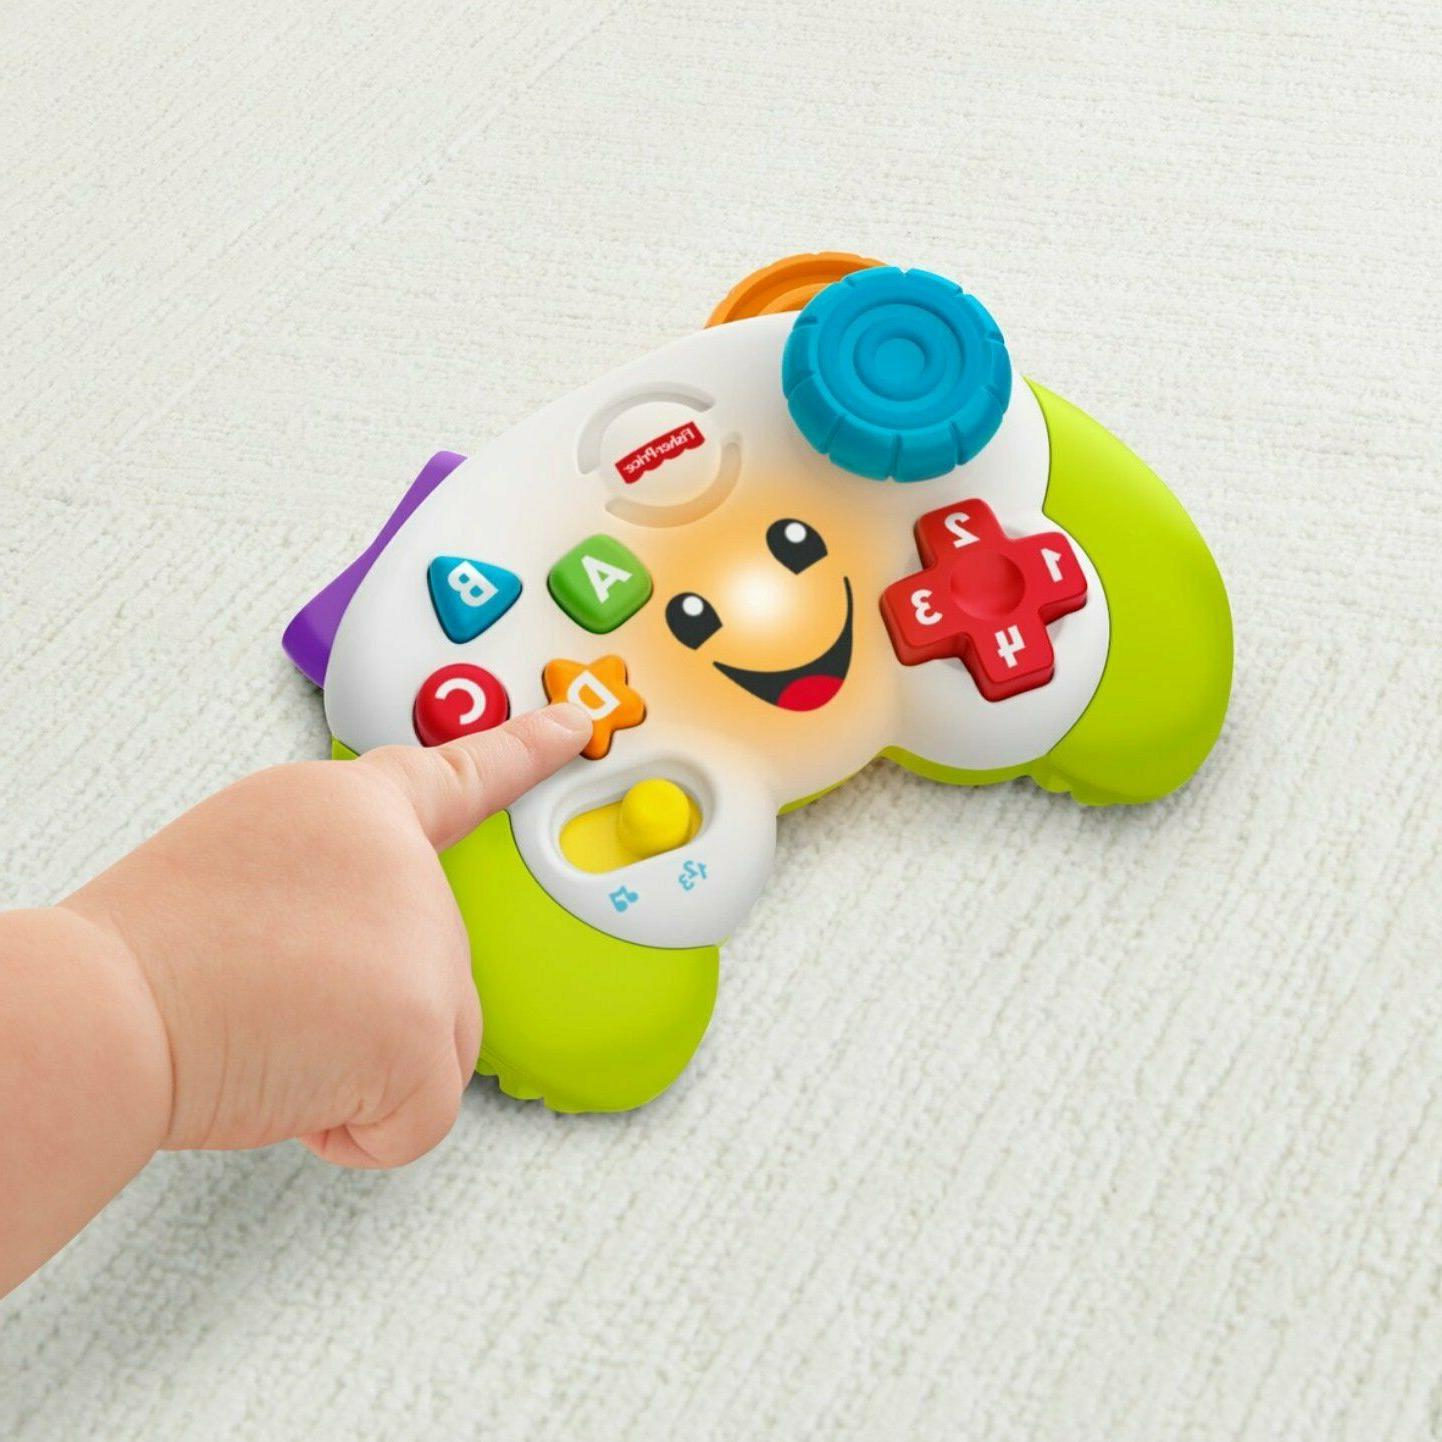 control for toy many activities